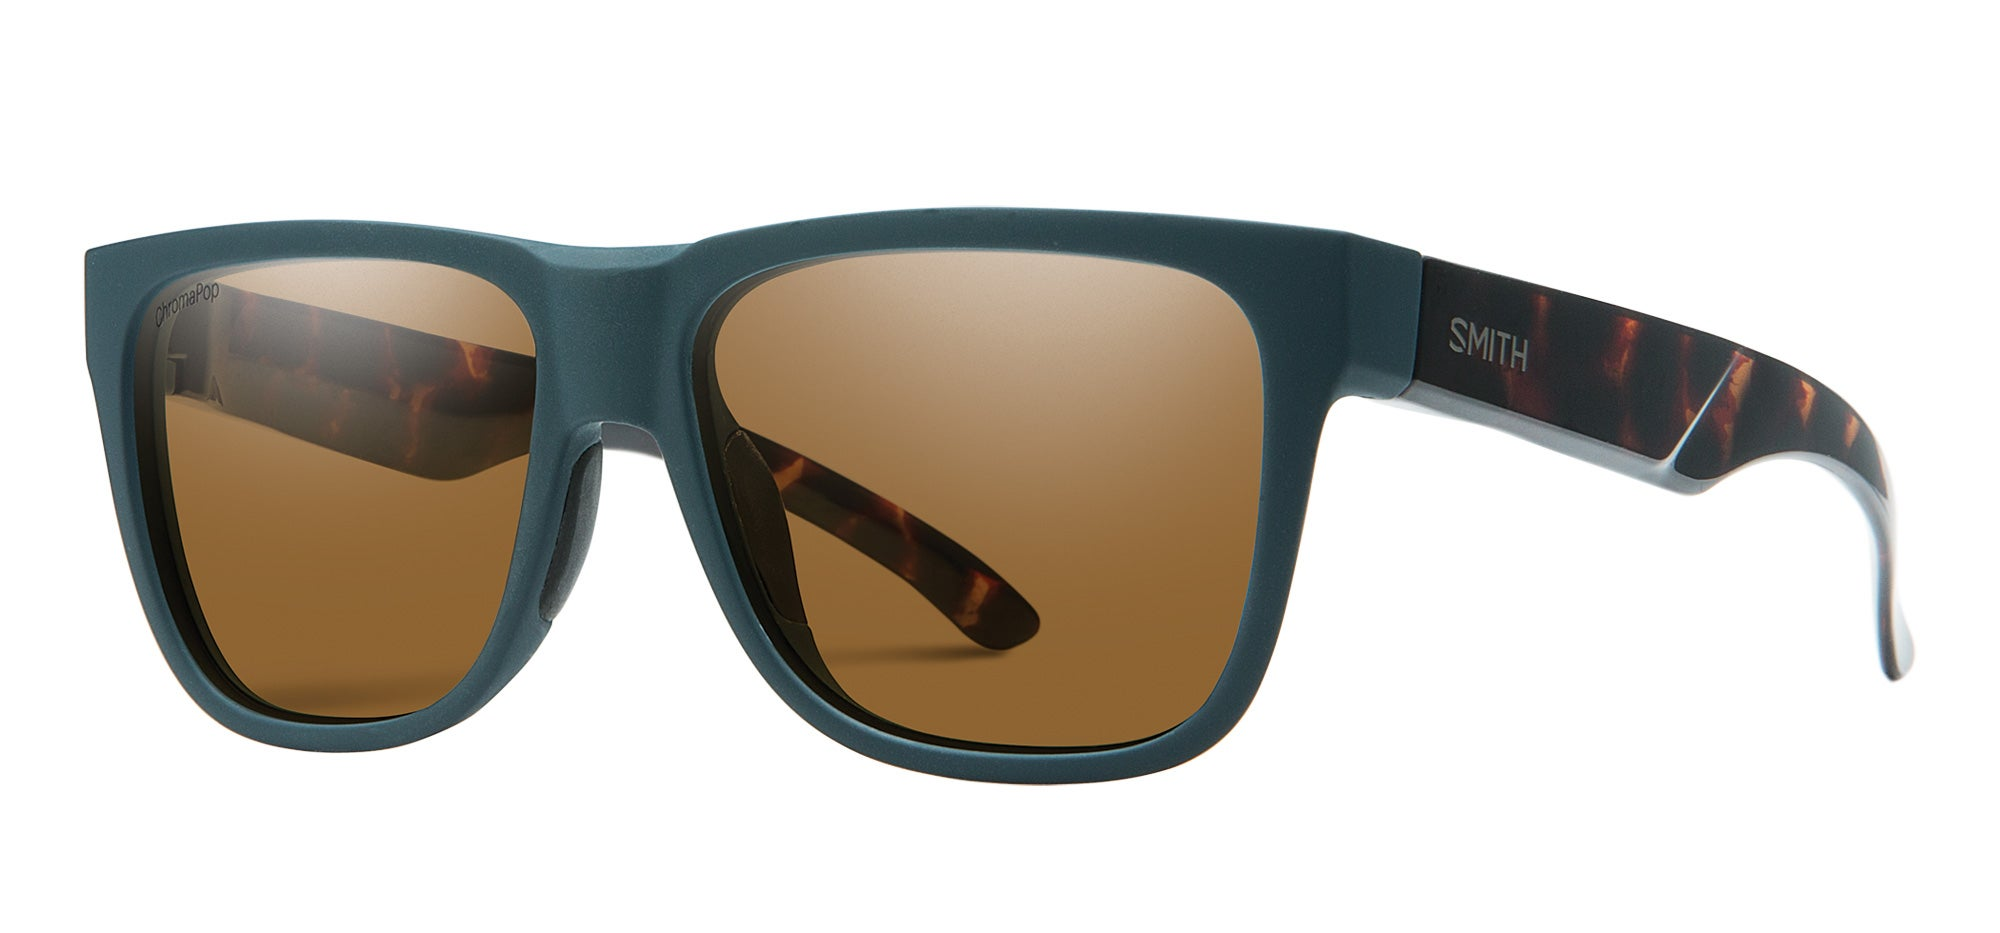 Deal of the Week: Smith Lowdown 2 Sunglasses